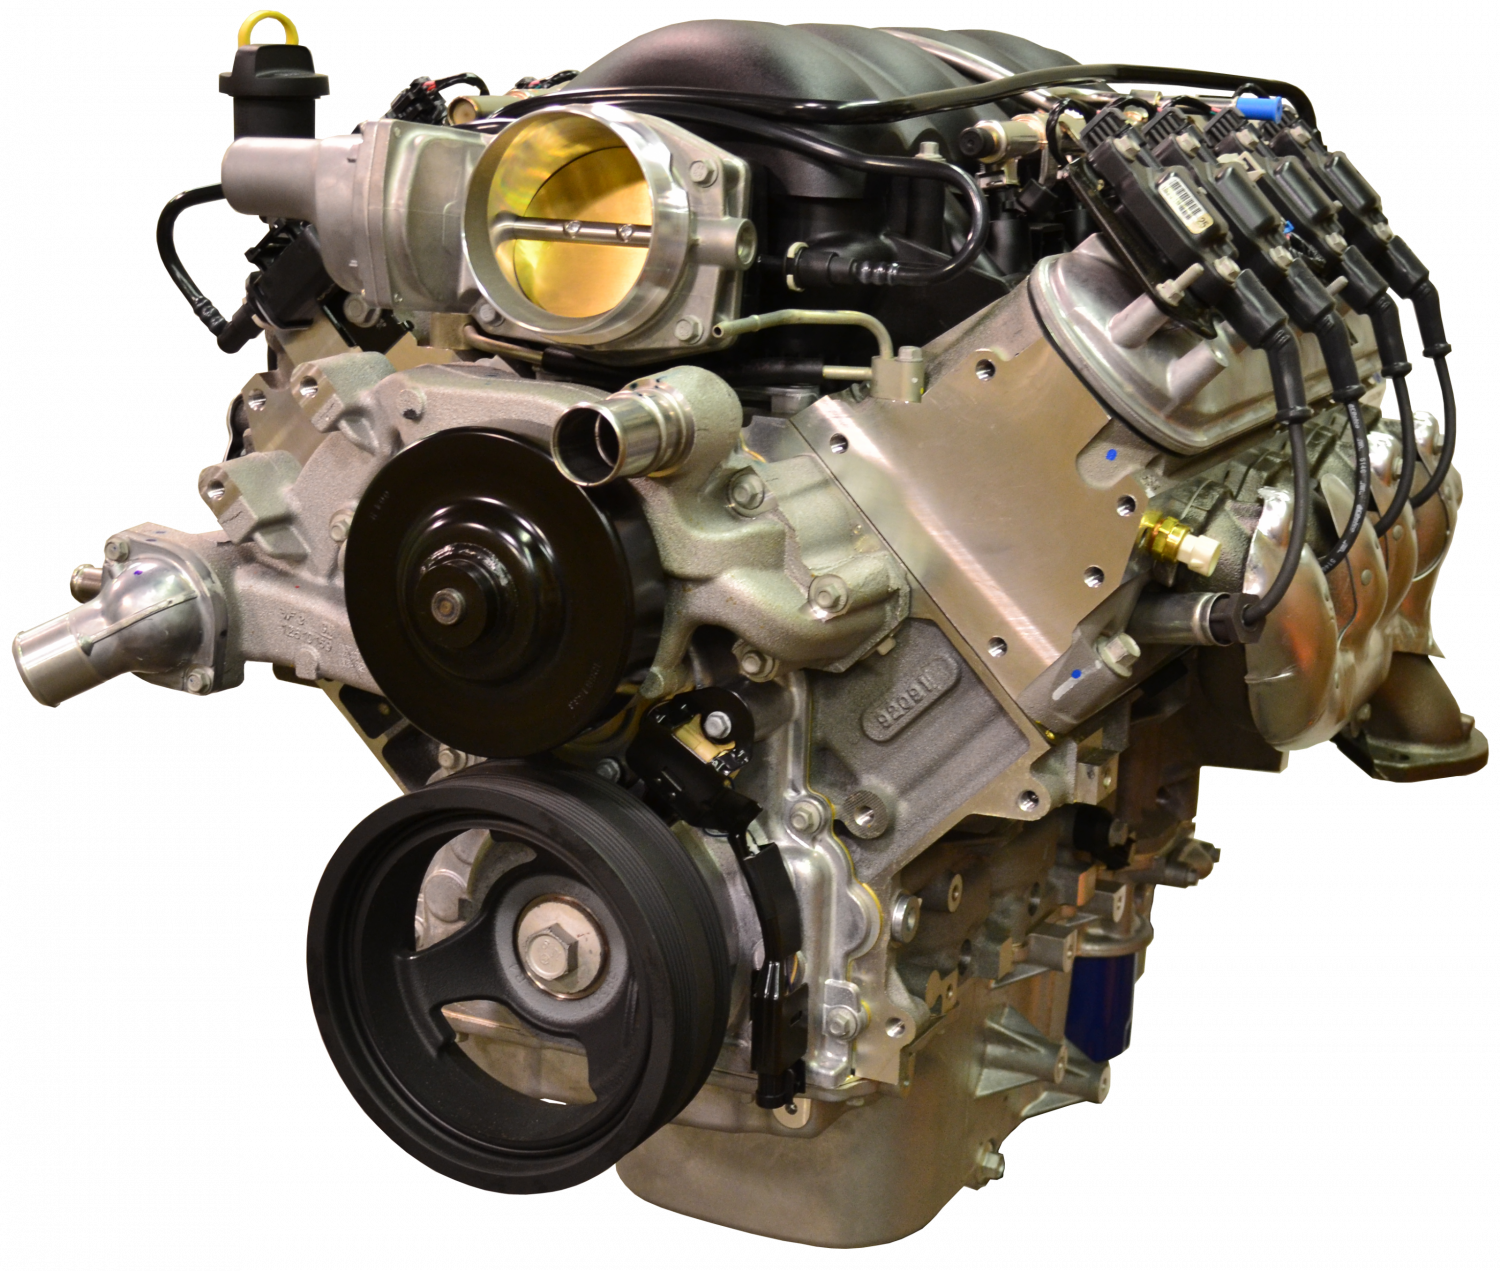 Chevrolet Performance Ls3 430 Hp Engine With 6l80e 6 Speed Auto Transmission Combo Package Cpsls36l80e